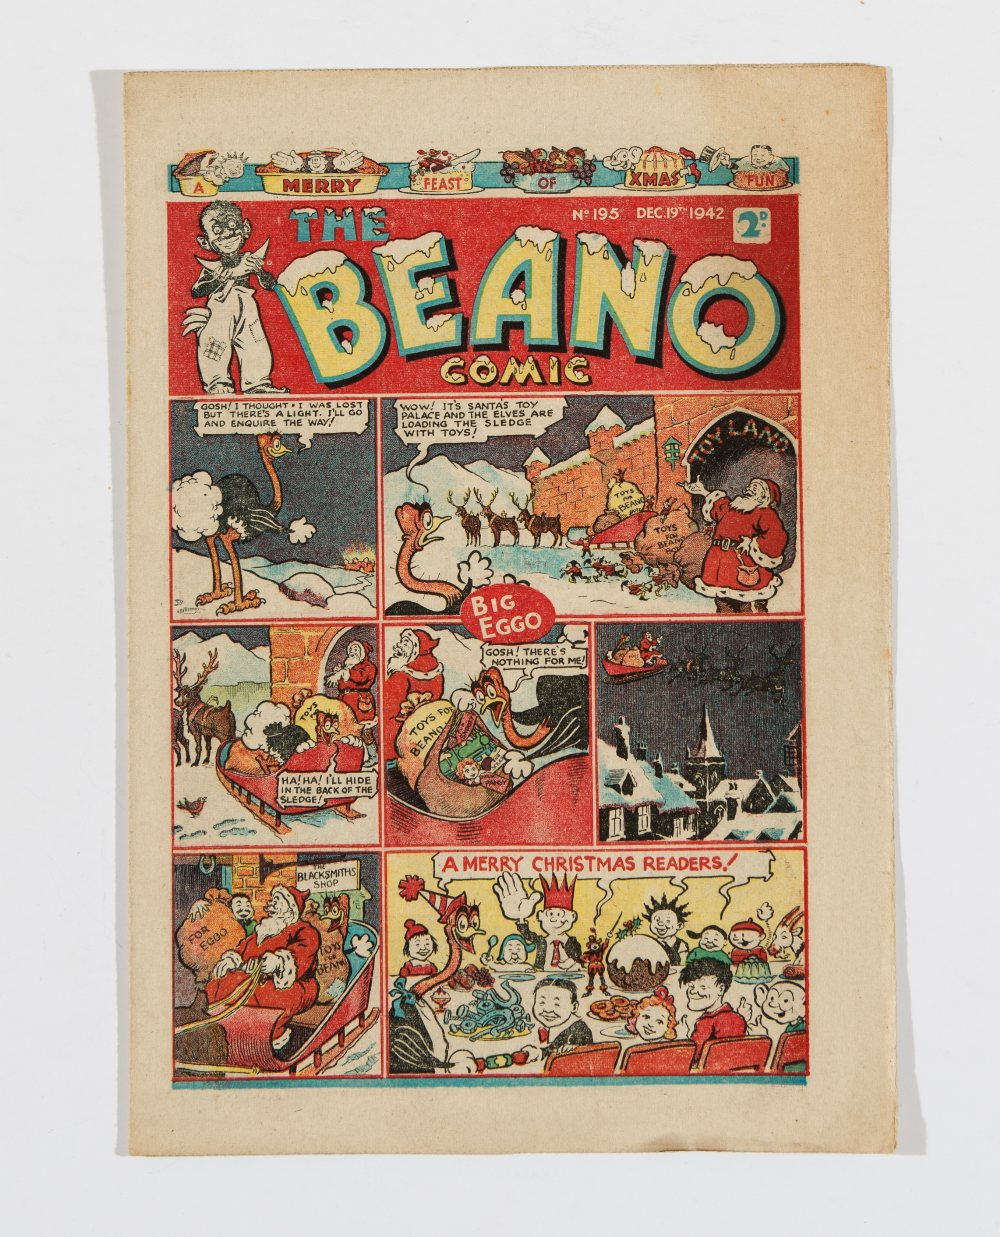 Lot 53 - Beano 195 Xmas number (1942). Propaganda war issue. 'Jerry won't be merry this Xmas if you do your